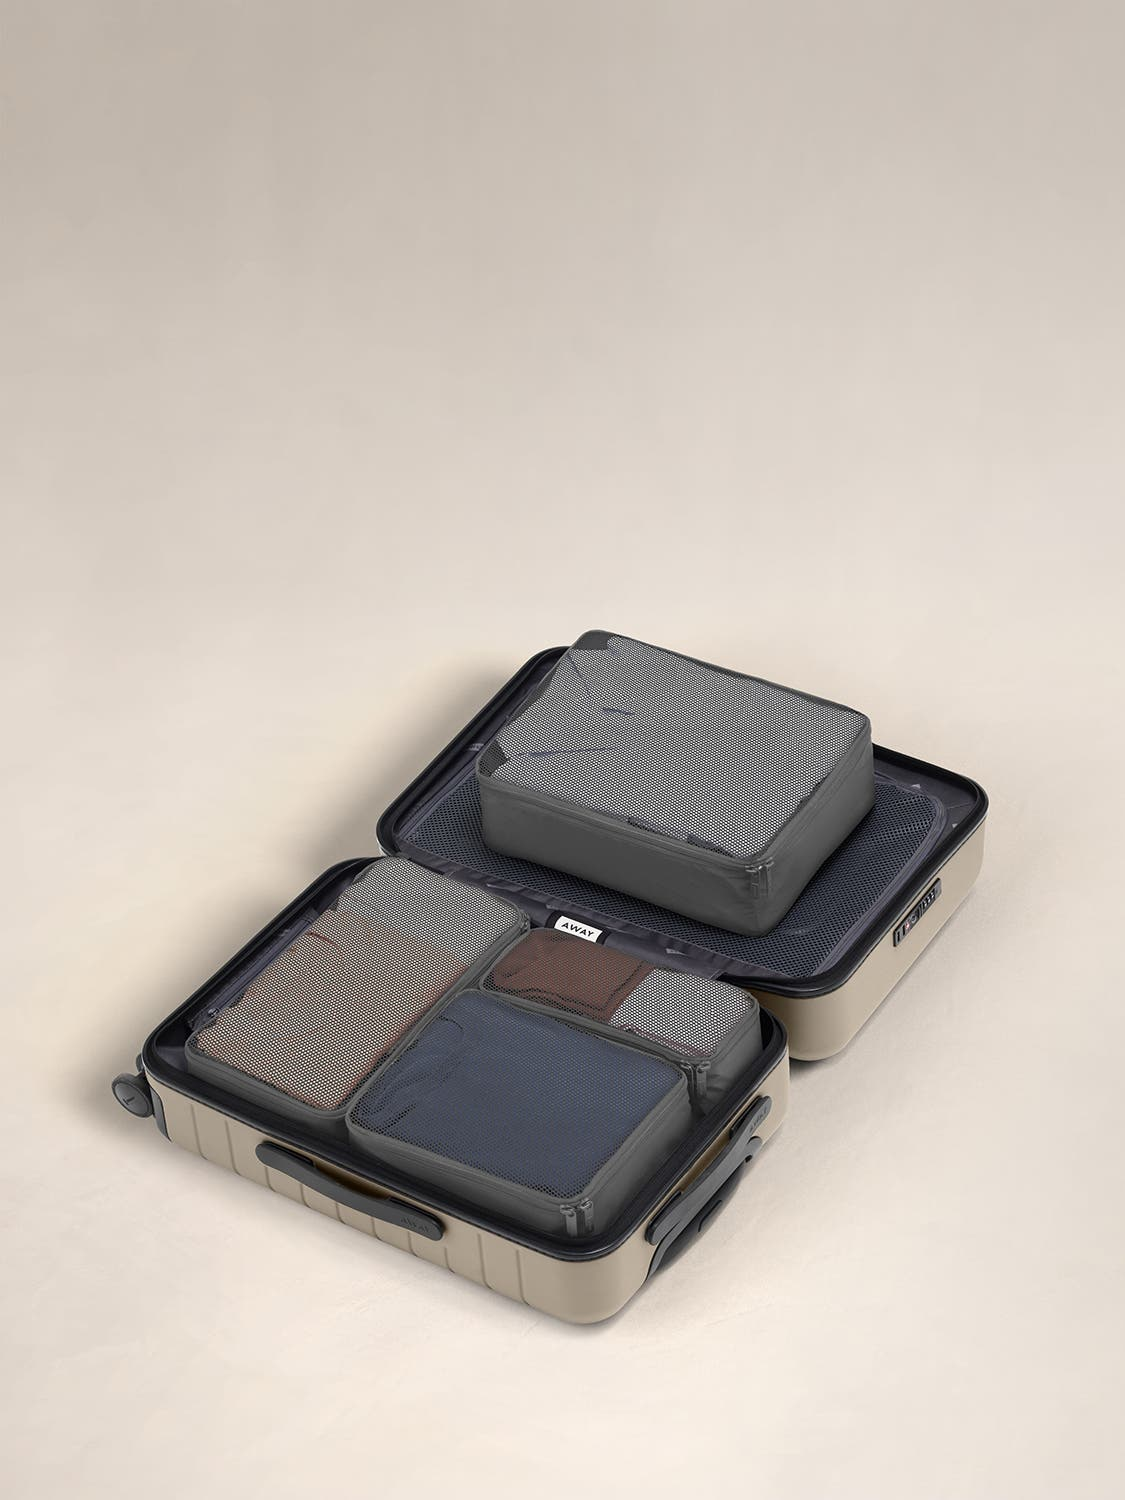 Asphalt travel packing cubes displayed in an Away suitcase